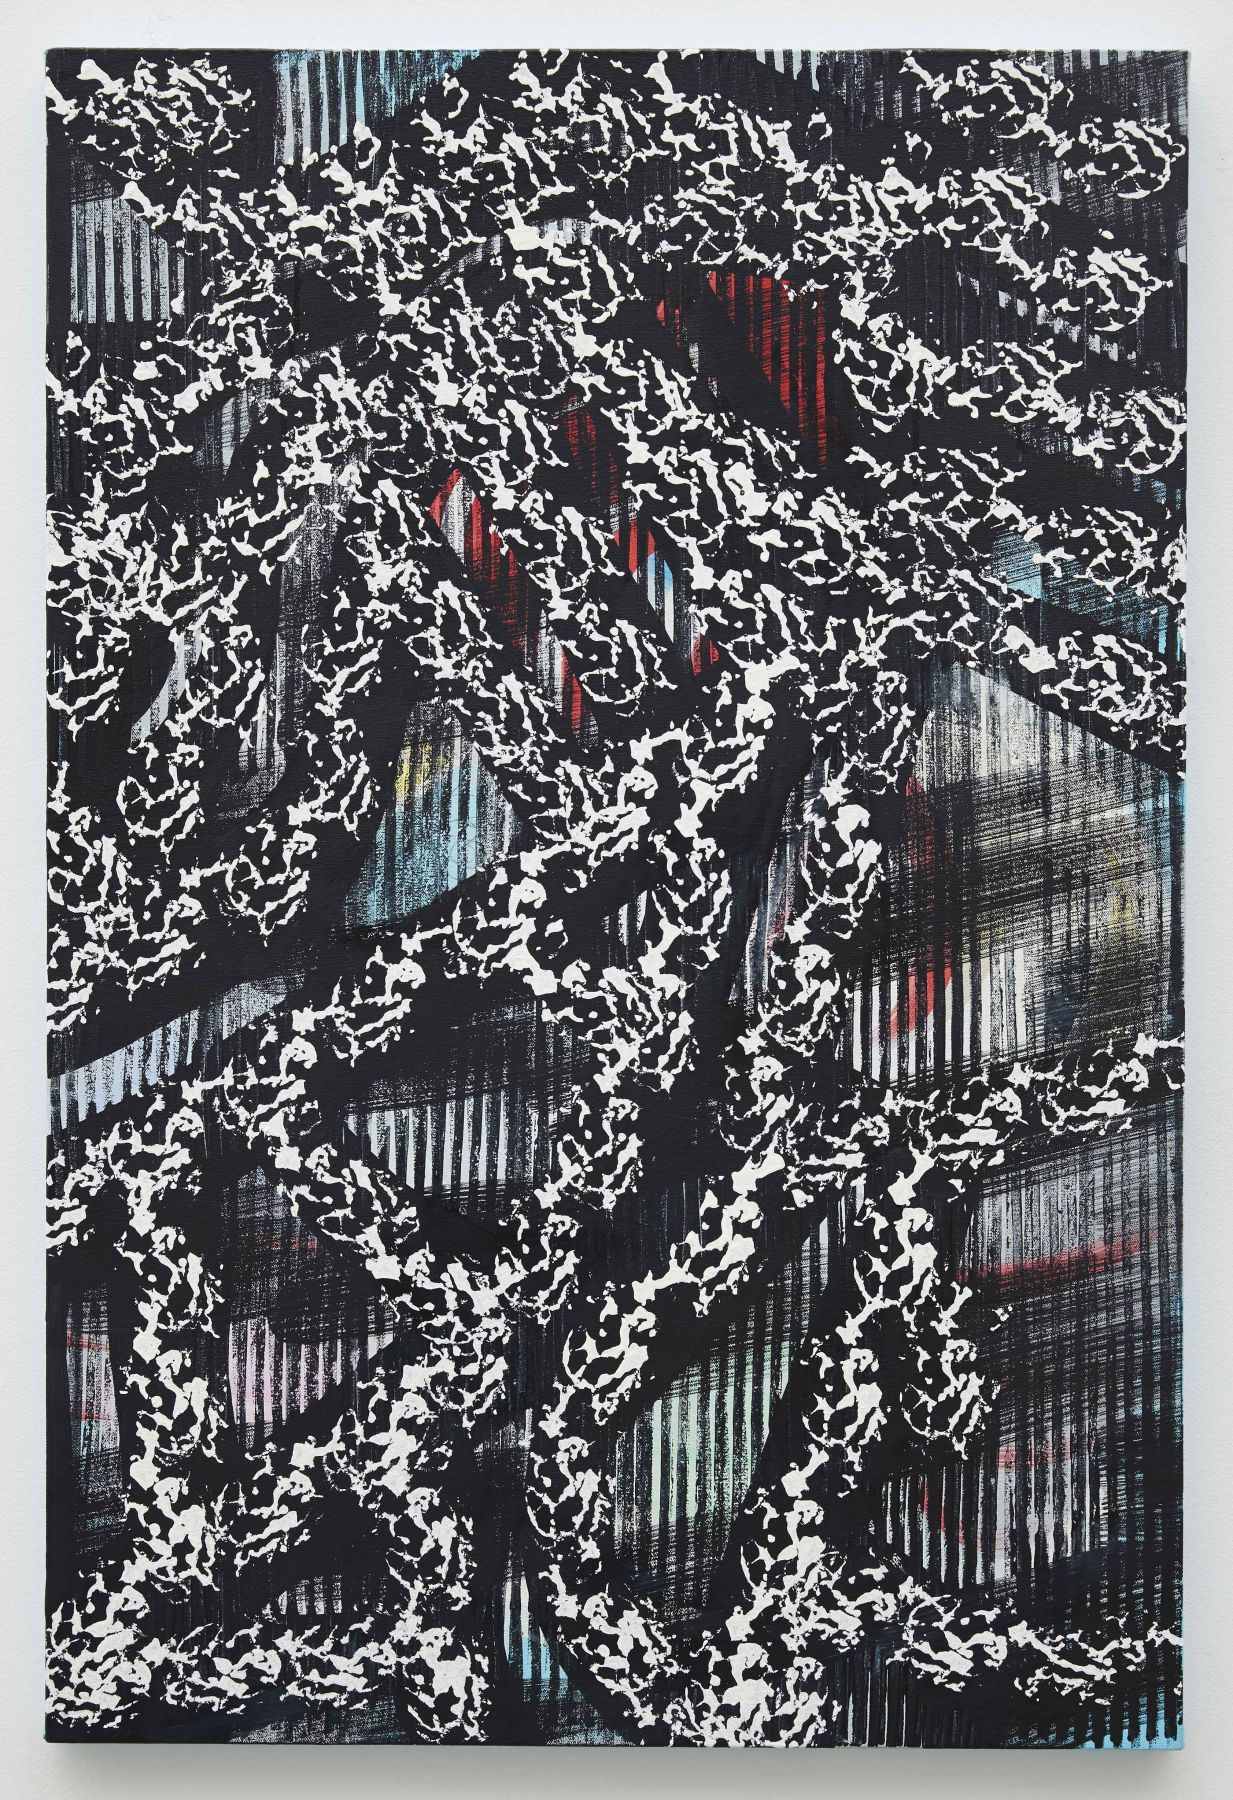 a dark black and white pattern painting by artist Julia Dault